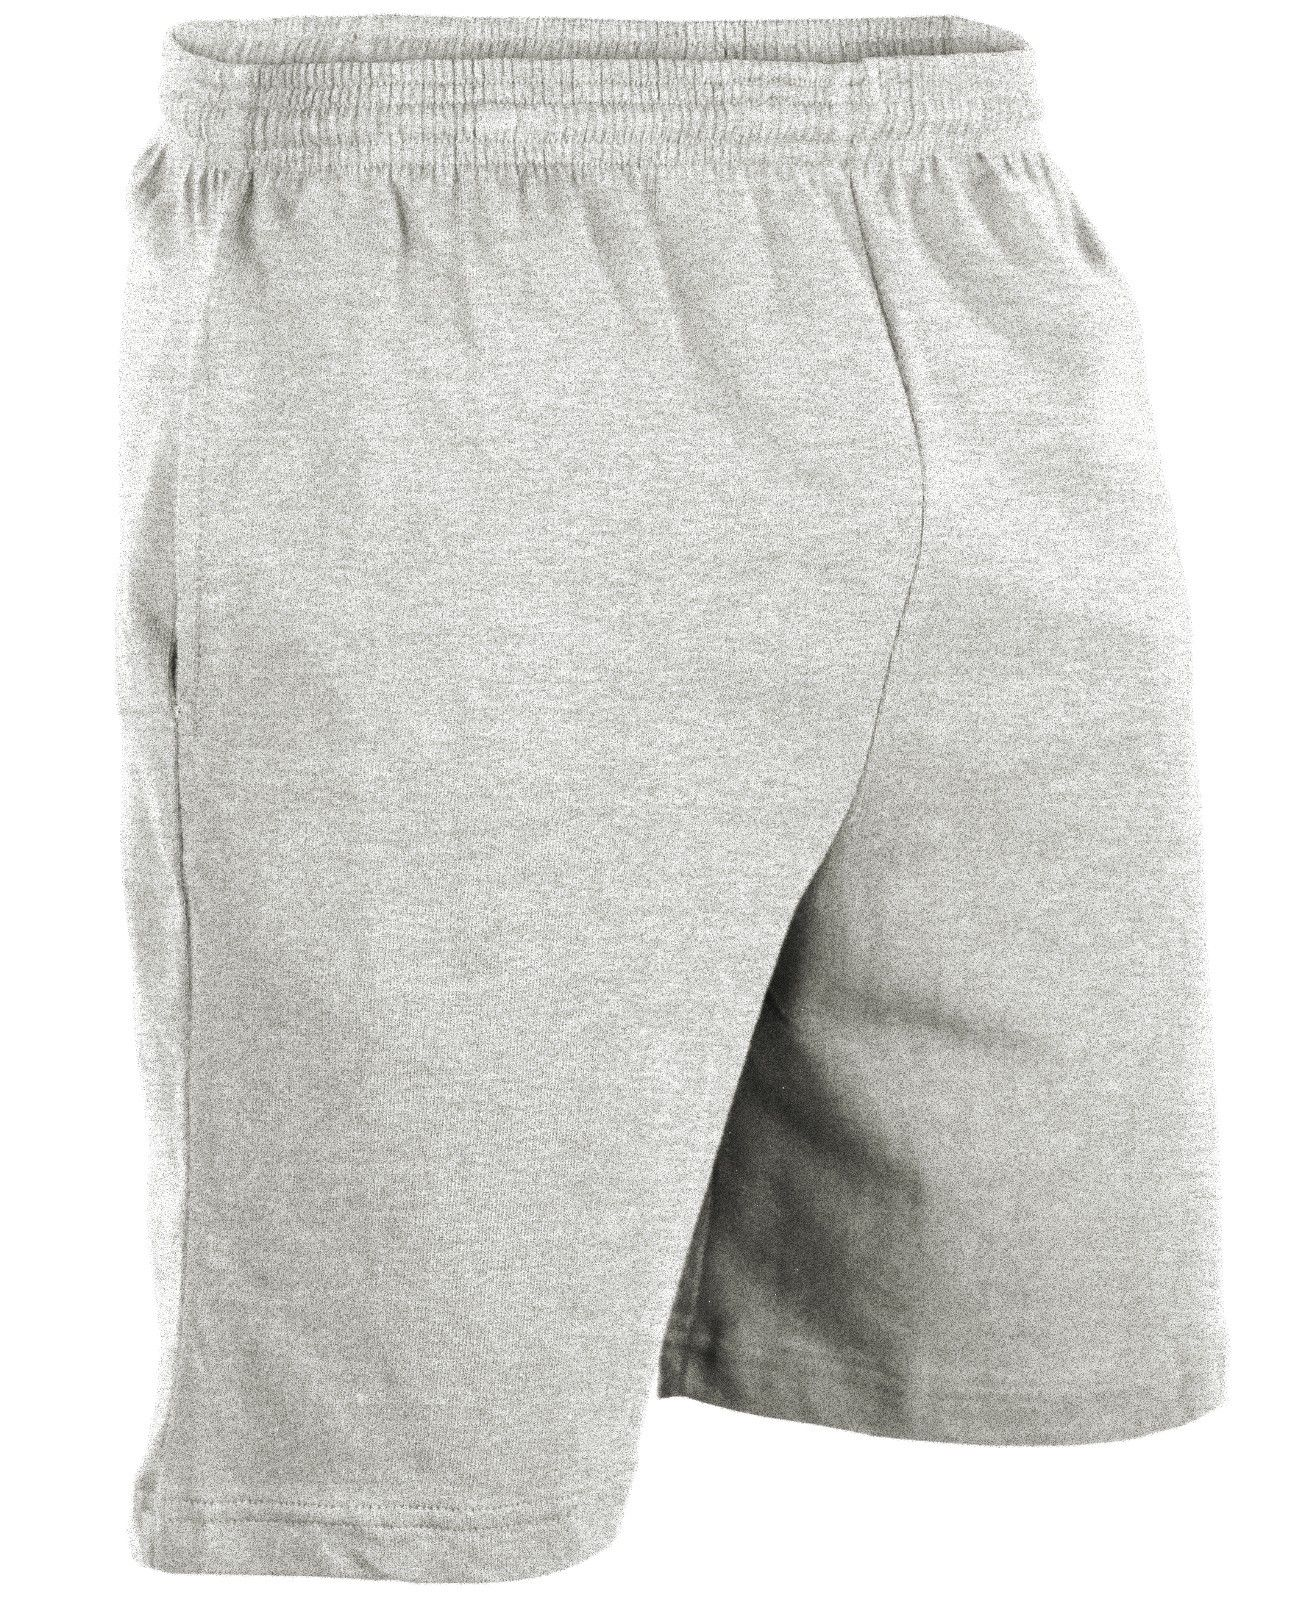 Shop for cotton gym shorts online at Target. Free shipping on purchases over $35 and save 5% every day with your Target REDcard.